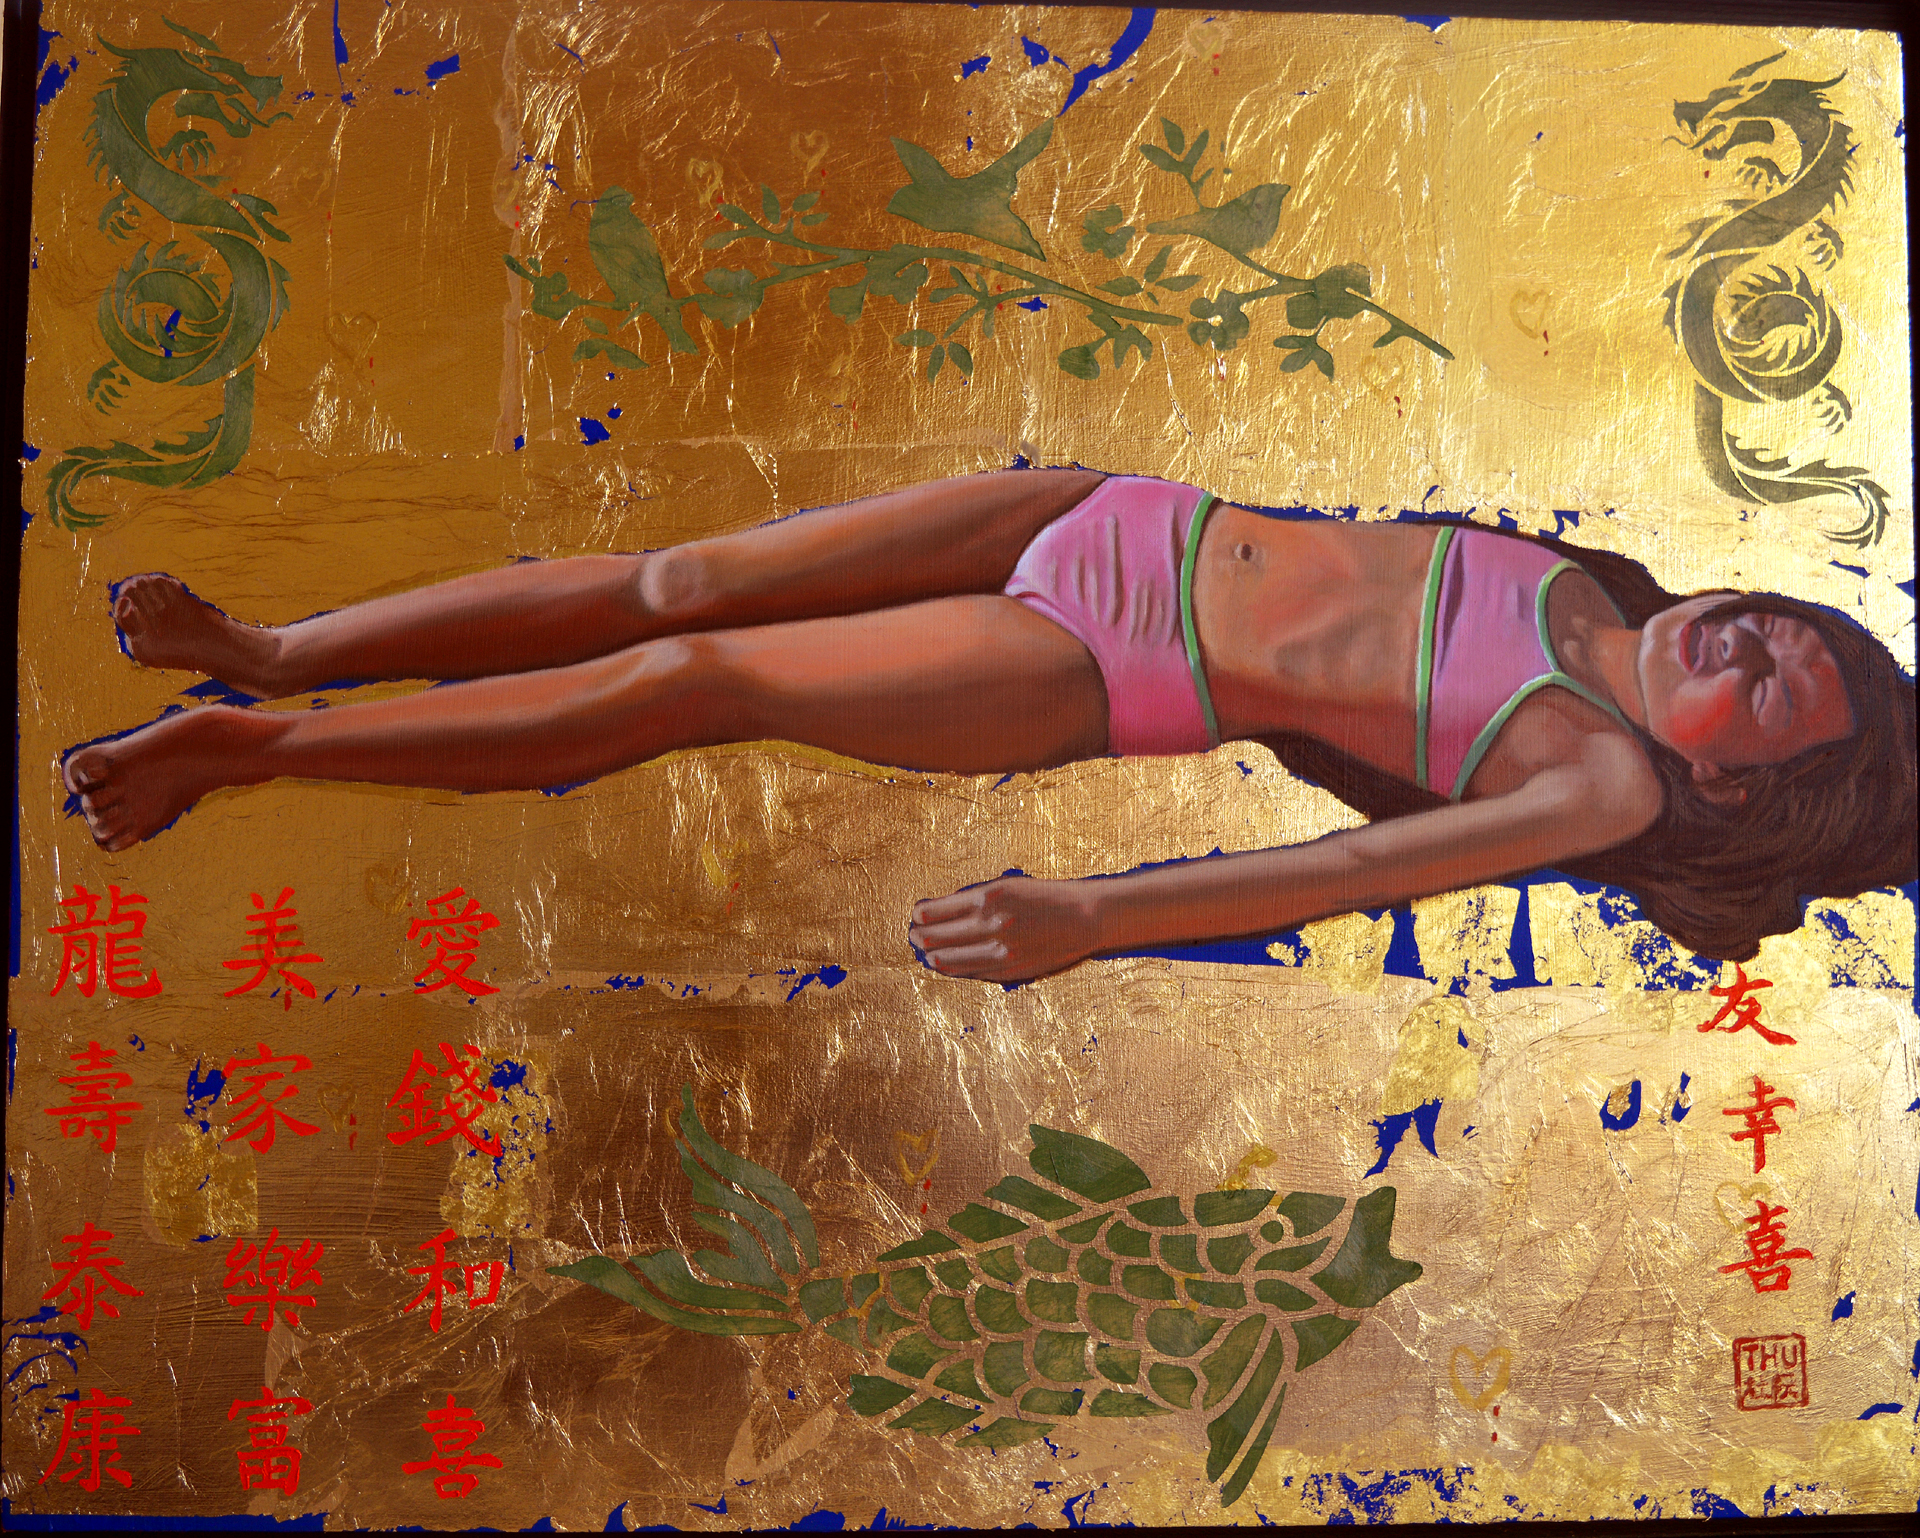 Thu Nguyen; The Fallen Barbie, 2019, Original Painting Oil, 20 x 16 inches. Artwork description: 241  The Fallen Barbie , oil and gold leaf on panel, image size 16 x 20 inches, framedThis painting portrays the contrast between the stereotype of a carefree sweet childhood with the reality of a life often filled with anxiety, confusion, broken heart and loneliness. ...